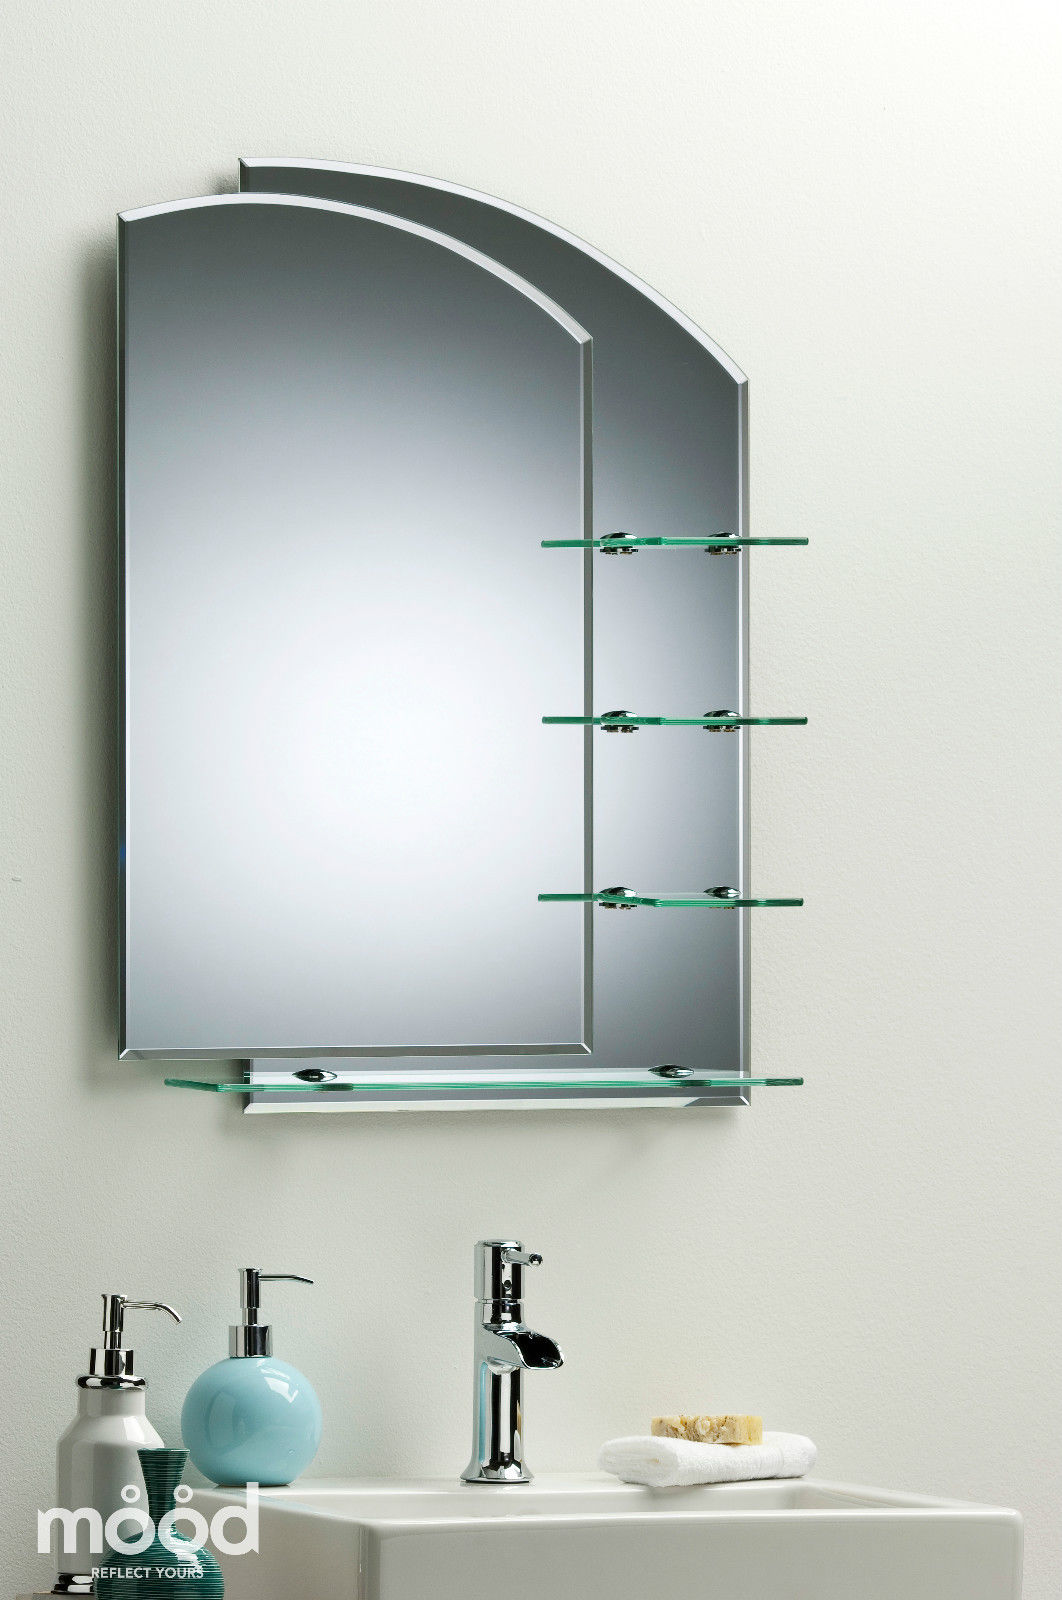 bathroom wall mounted mirrors bathroom mirror modern stylish with shelves frameless wall 17143 | 1024 1